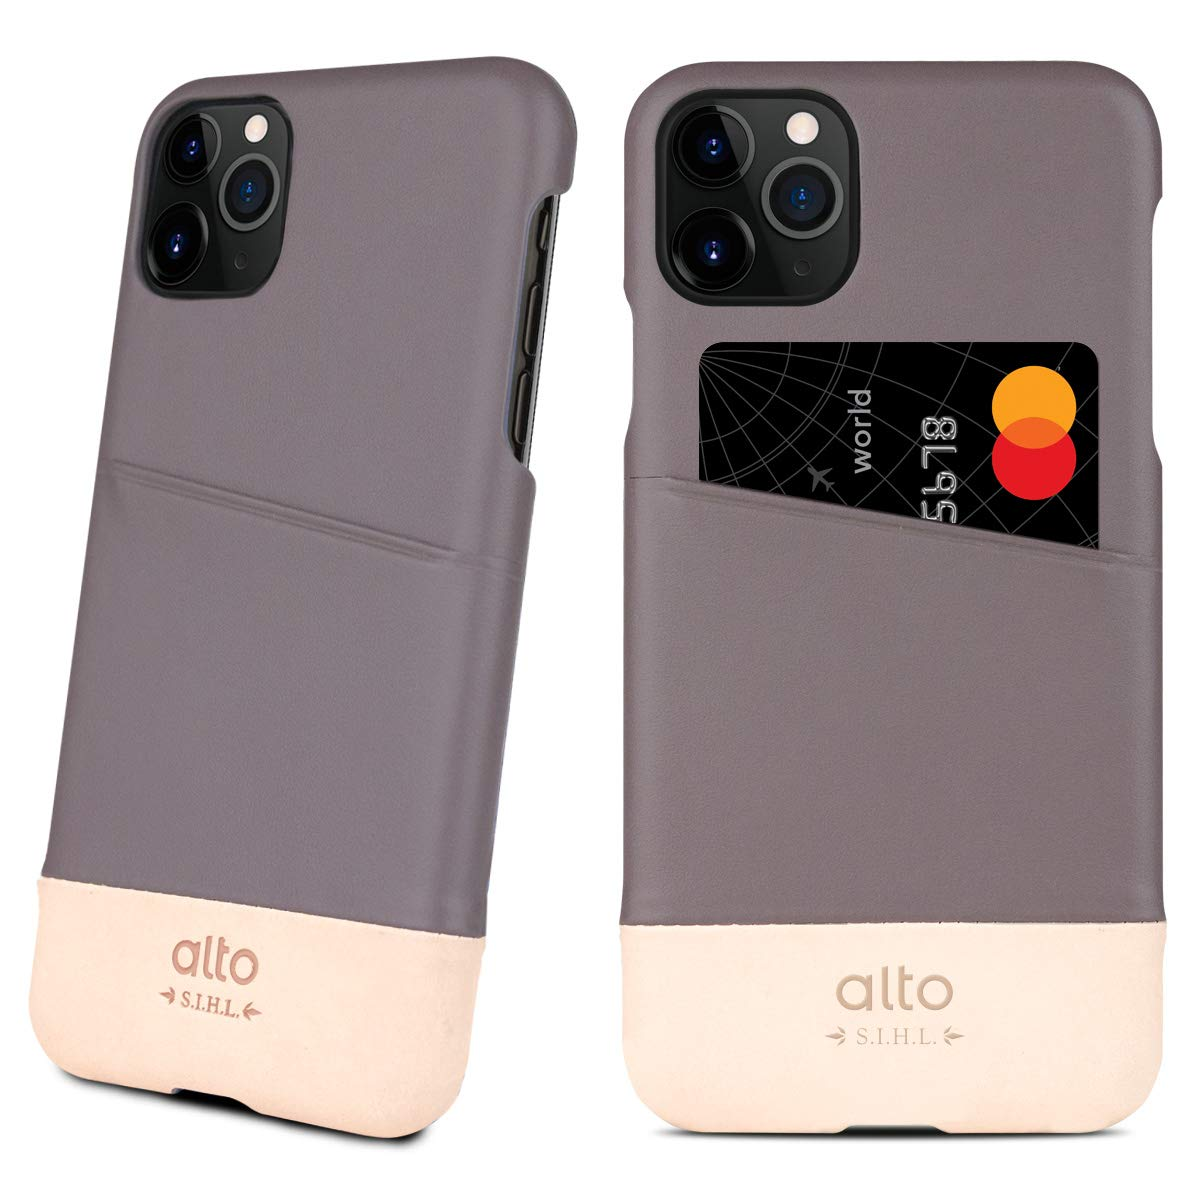 Alto Metro Compatible with iPhone 11 Pro (5.8 inch), Premium Handmade Italian Leather Wallet Case with Card Holder Design (Cement/Original)